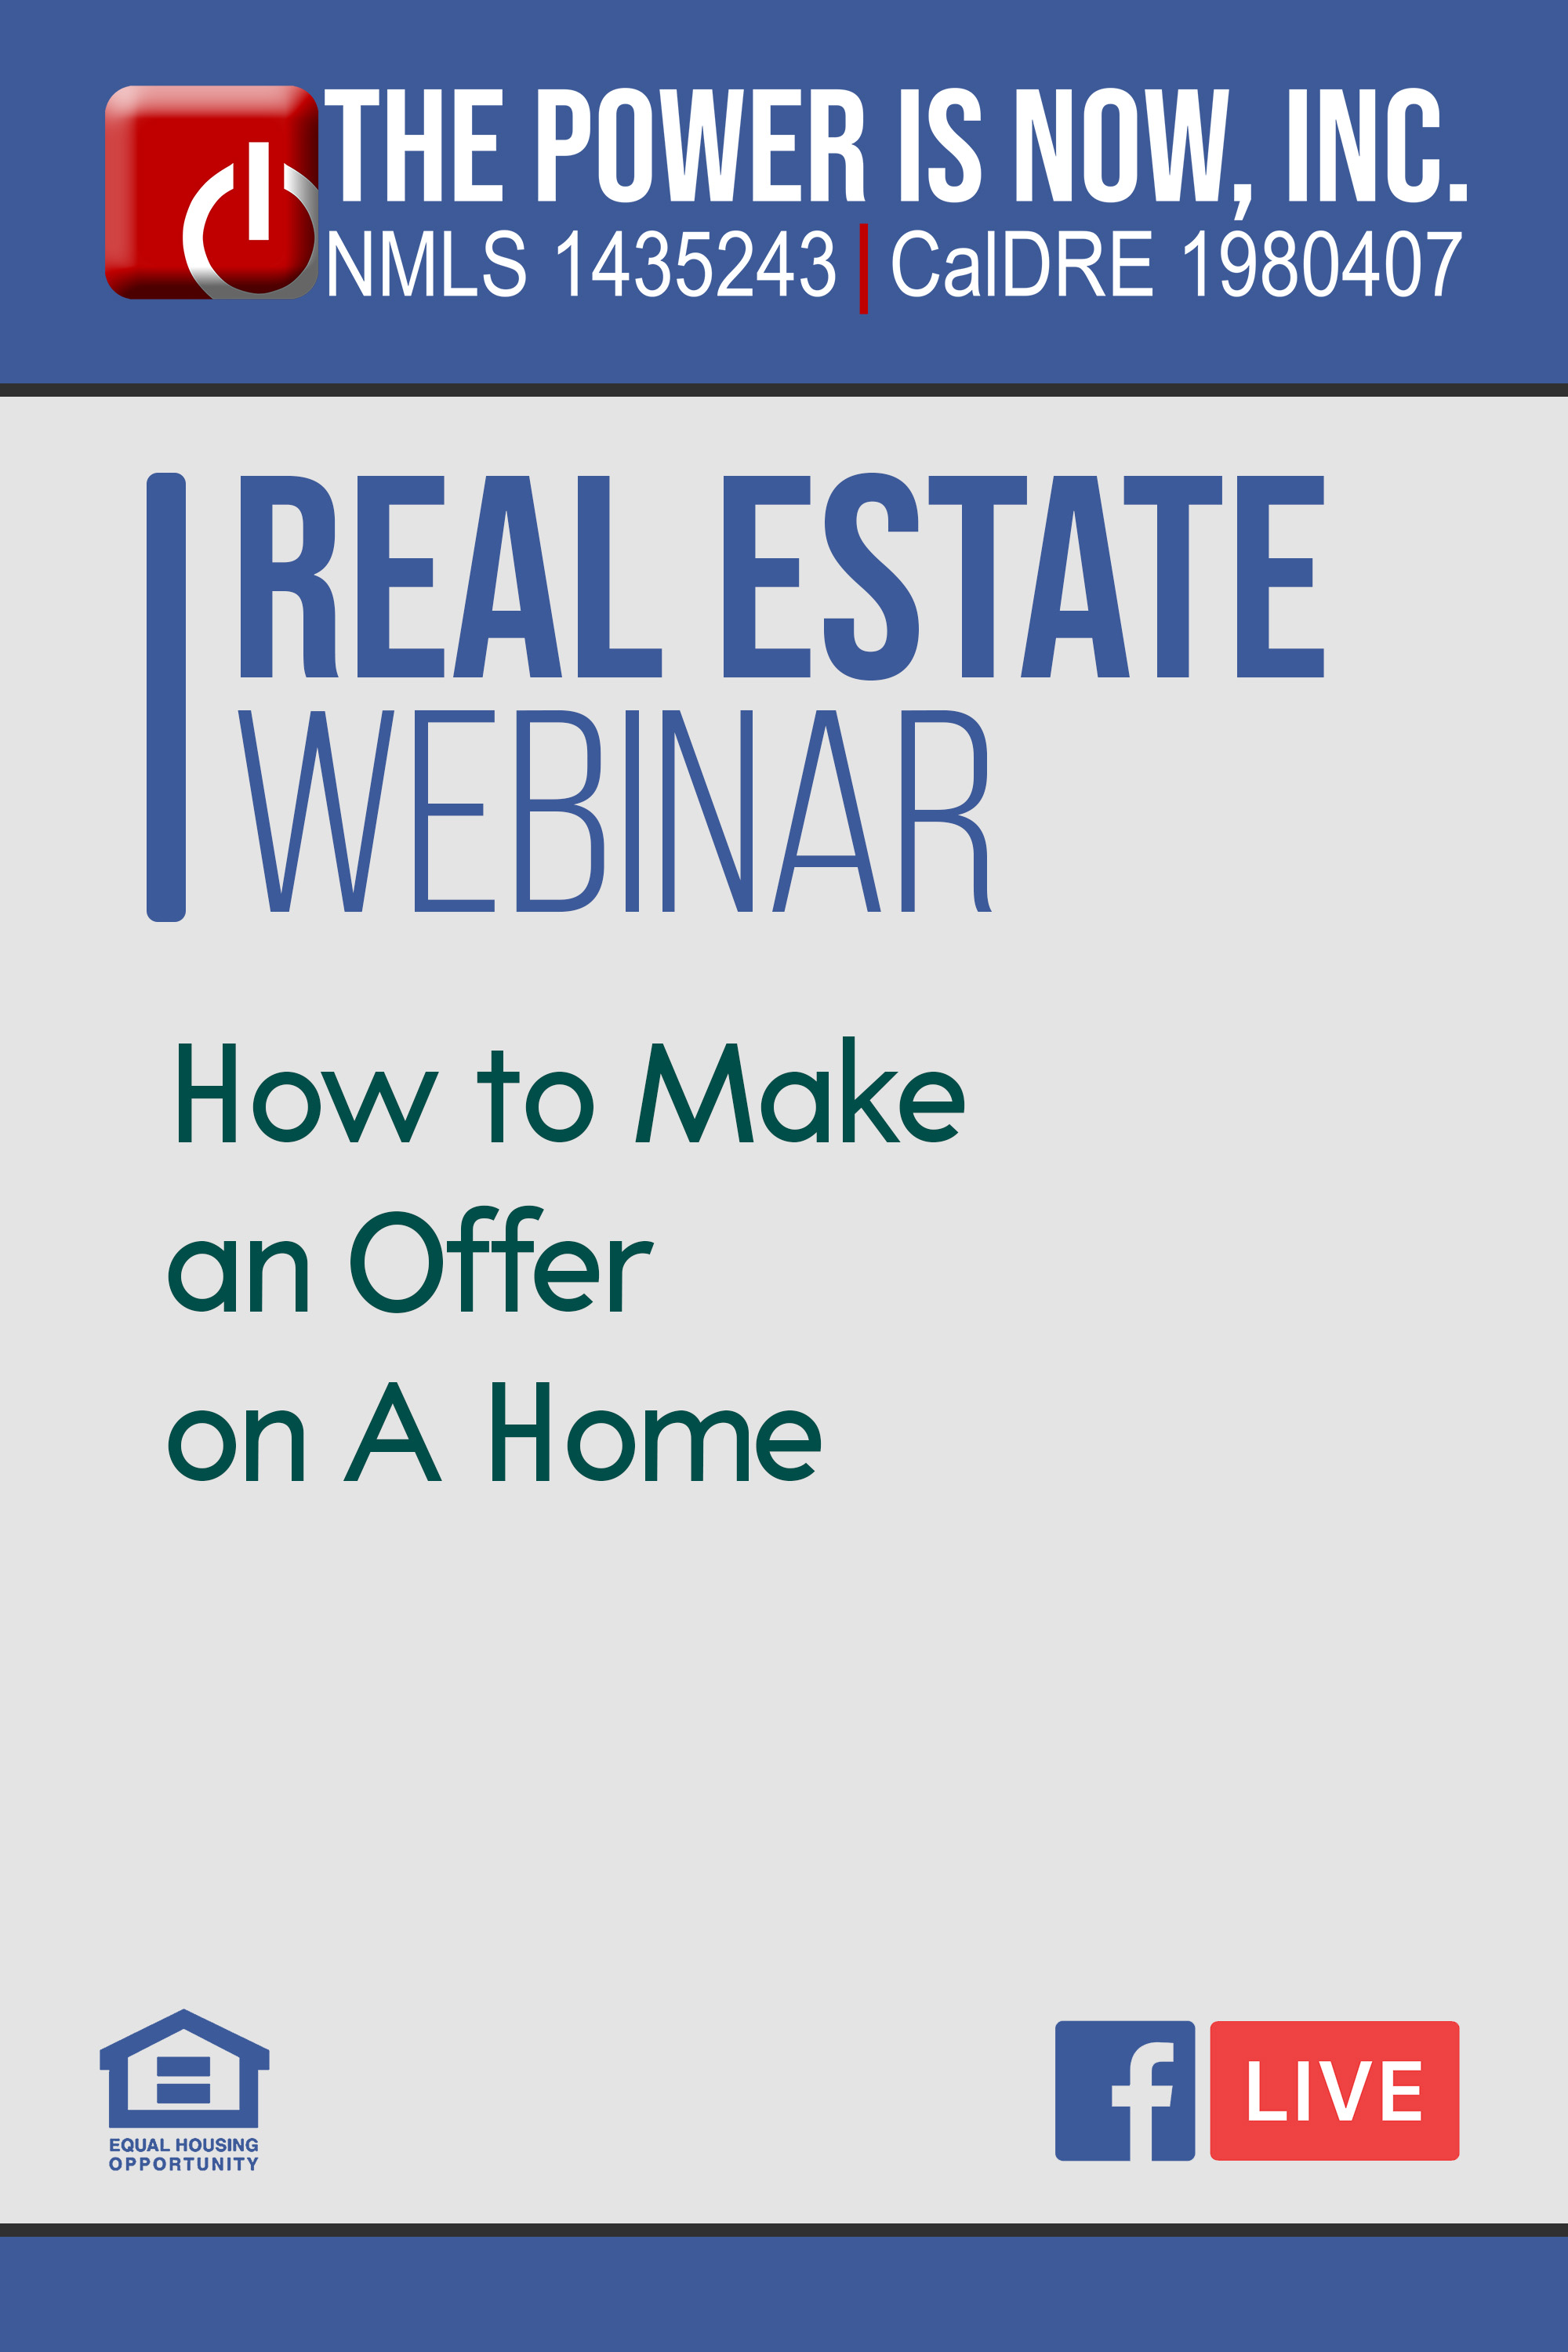 How to Make an Offer on A Home